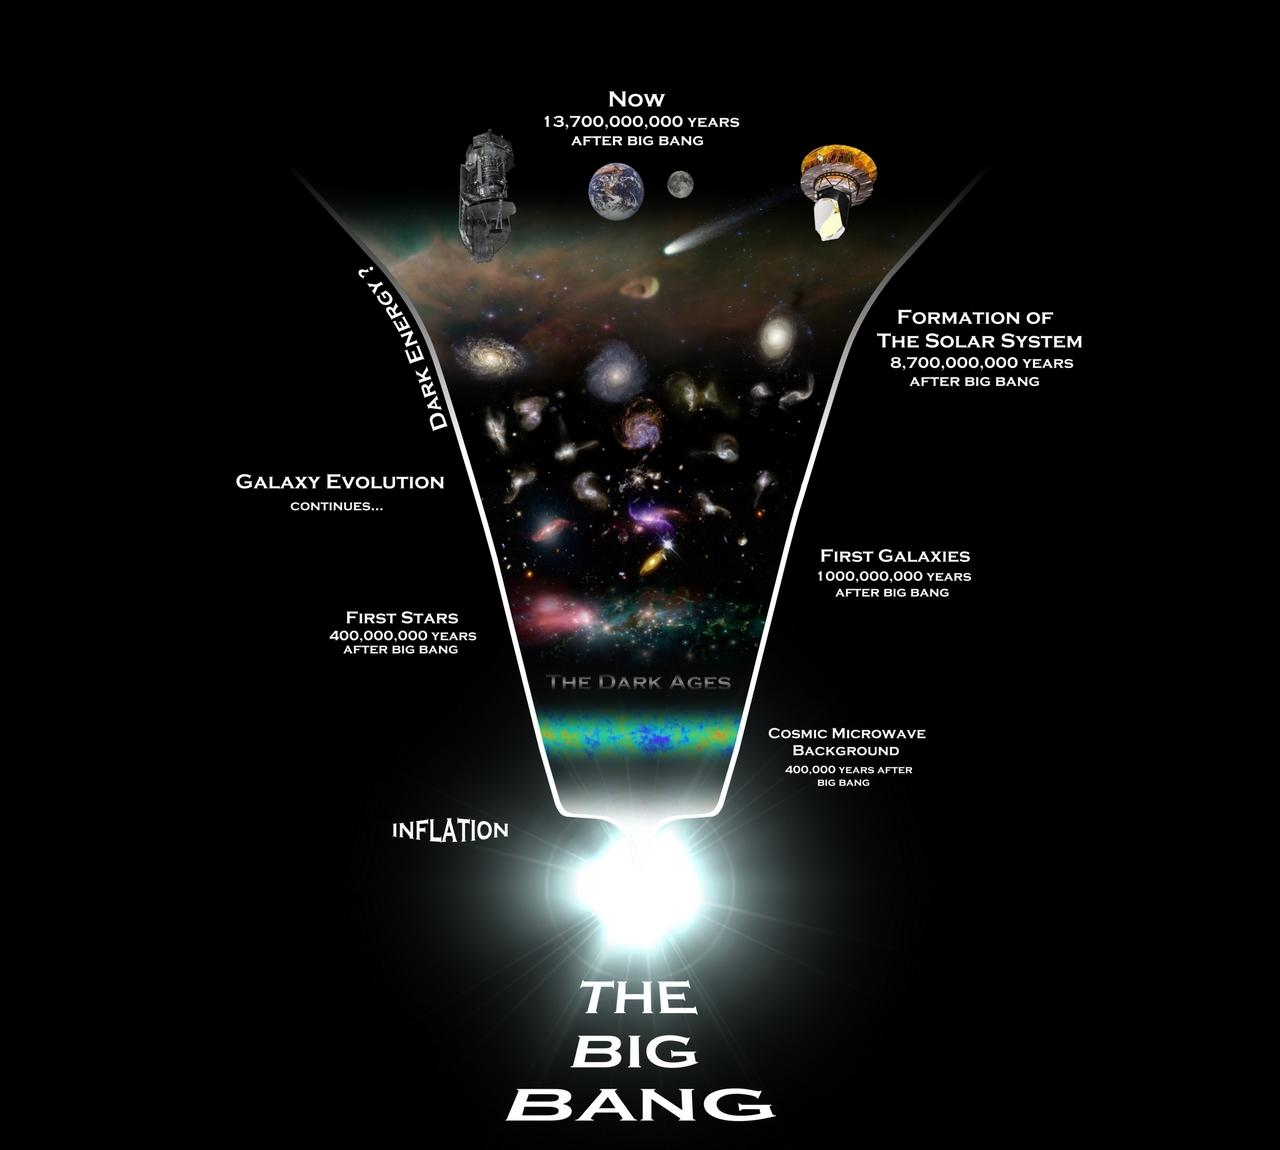 the big bang cosmology Big bang cosmology the big bang model is a broadly accepted theory for the origin and evolution of our universe it postulates that 12 to 14 billion years ago, the portion of the universe we can see today was only a few millimeters across.